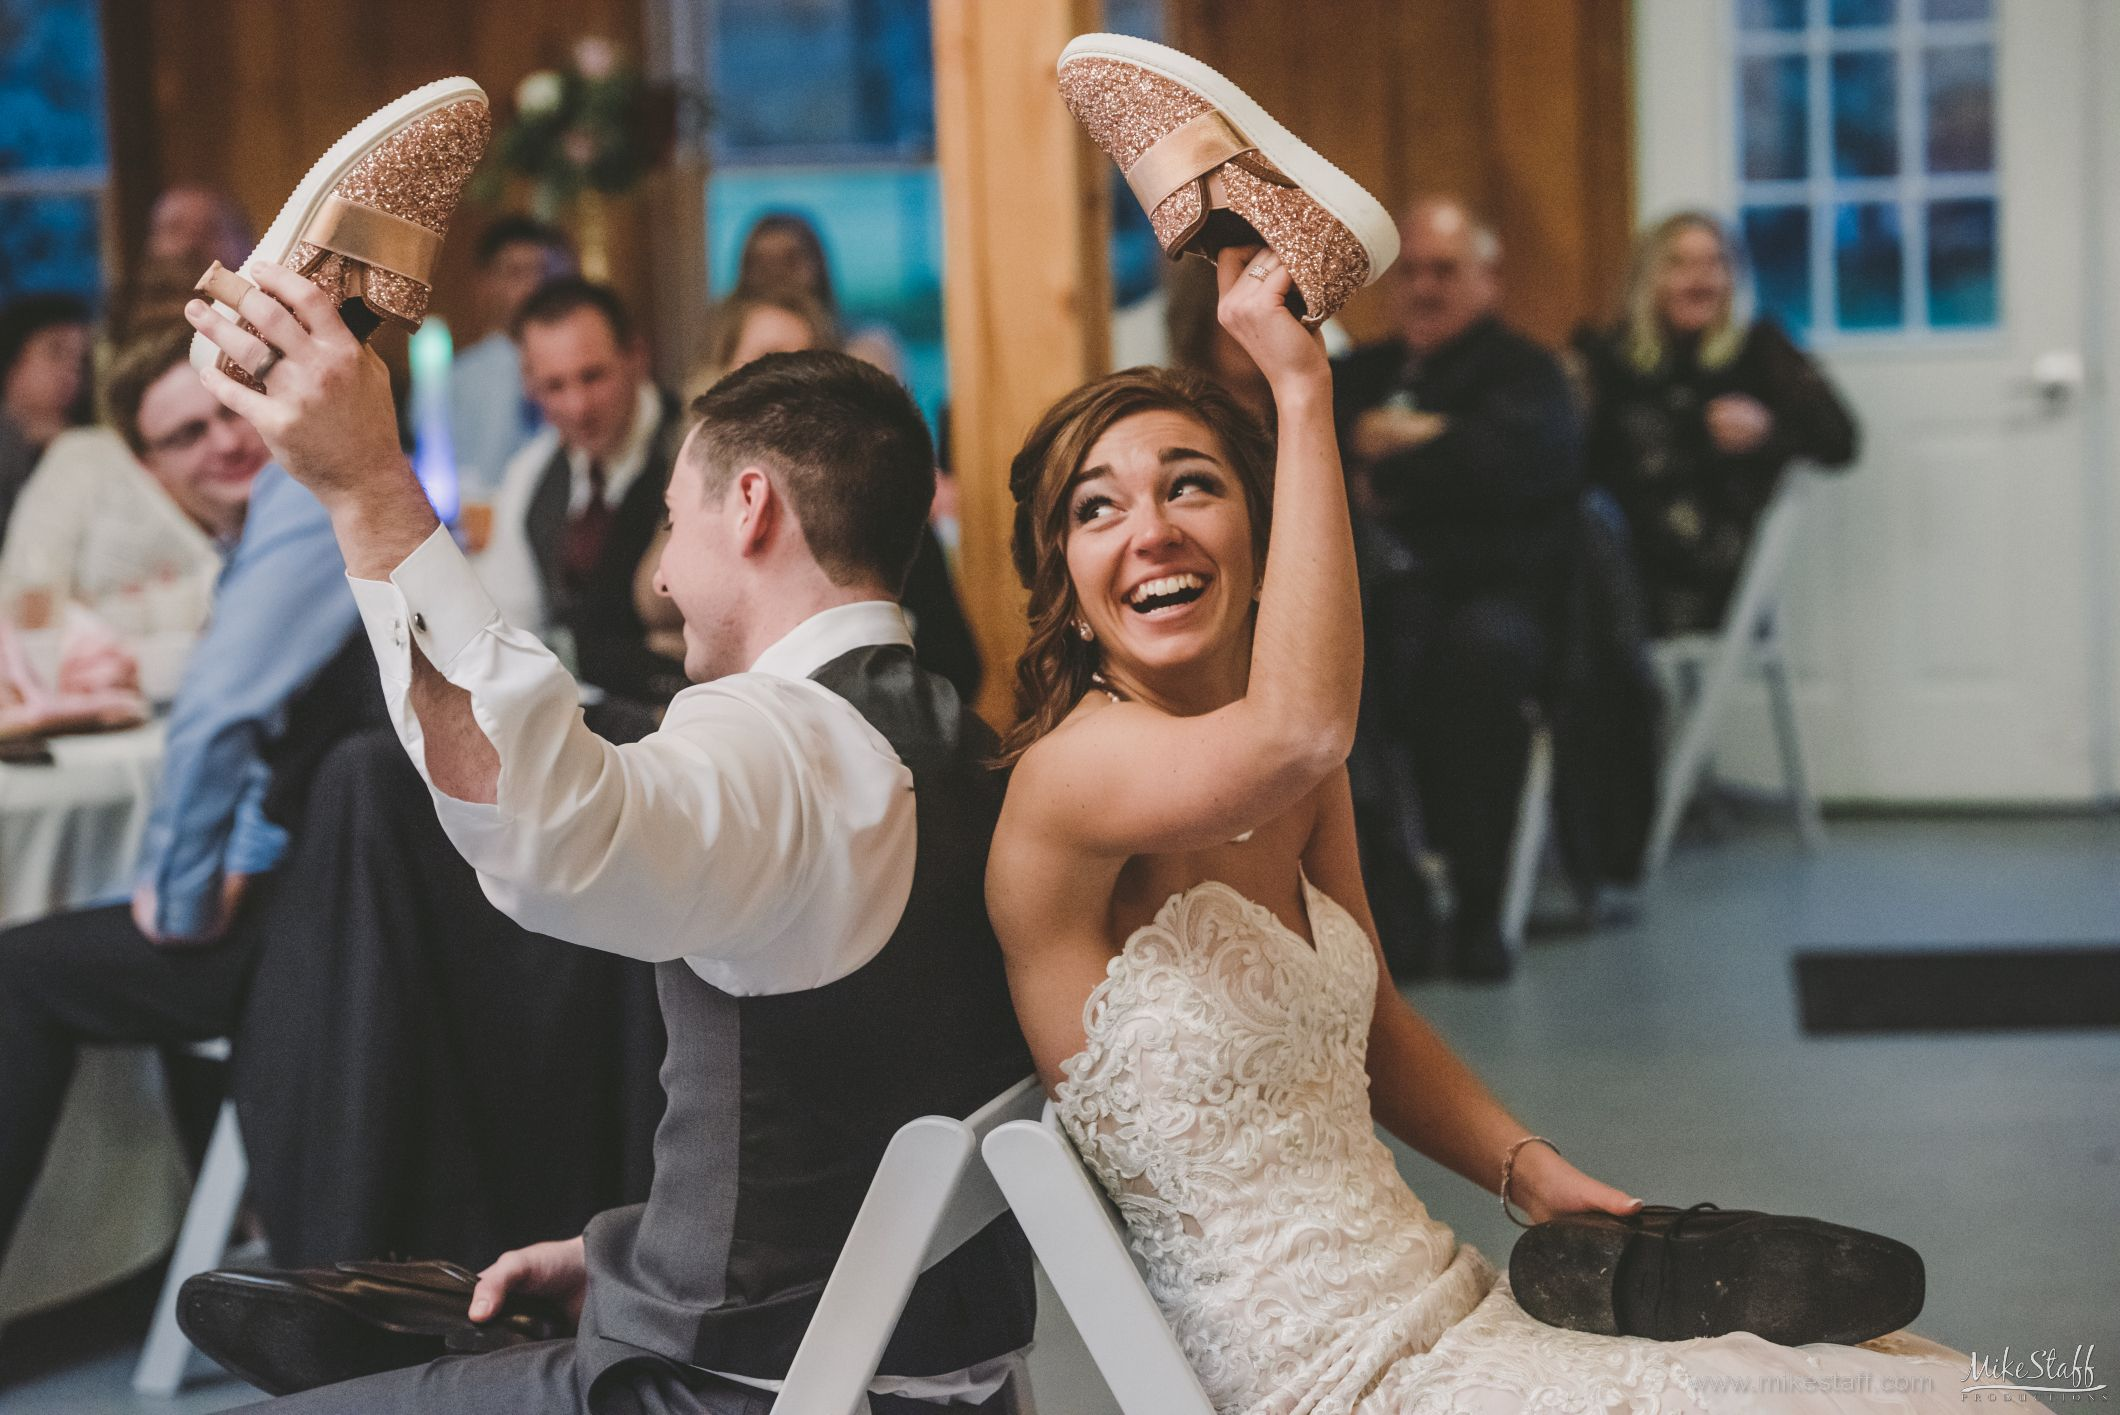 Have you read how to hire a GREAT DJ? Wedding reception